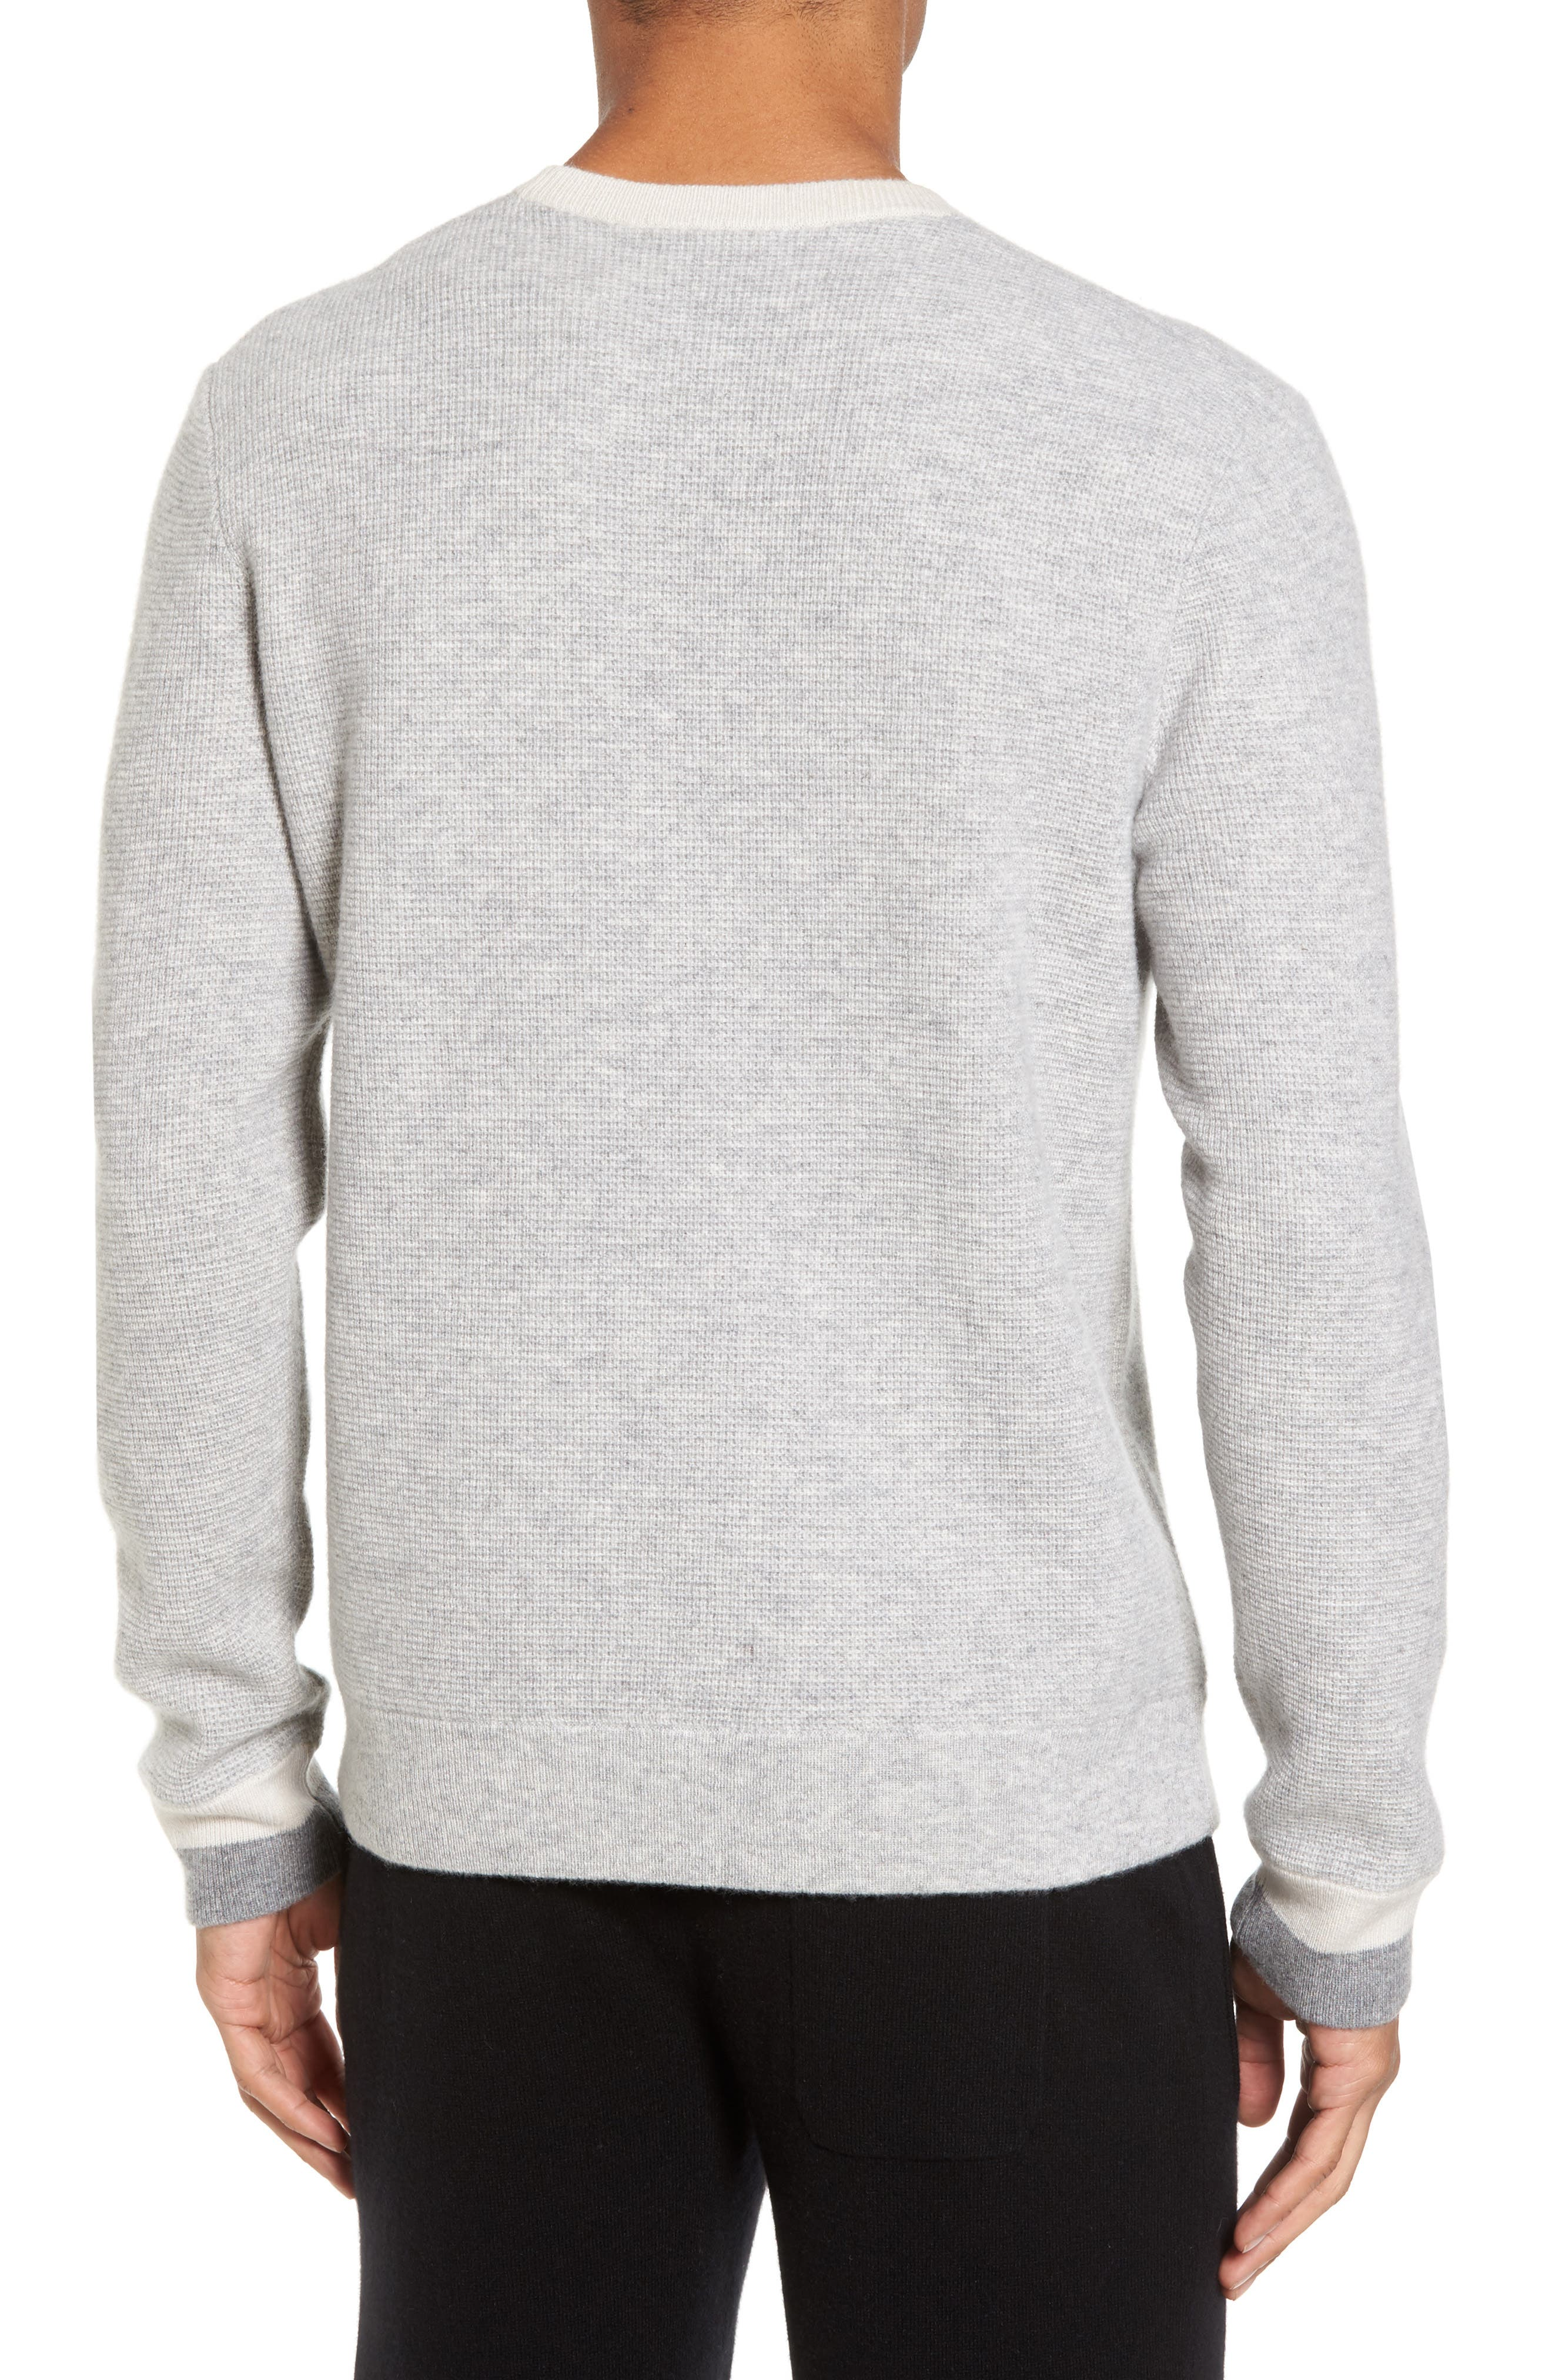 Thermal Cashmere Sweater,                             Alternate thumbnail 2, color,                             051